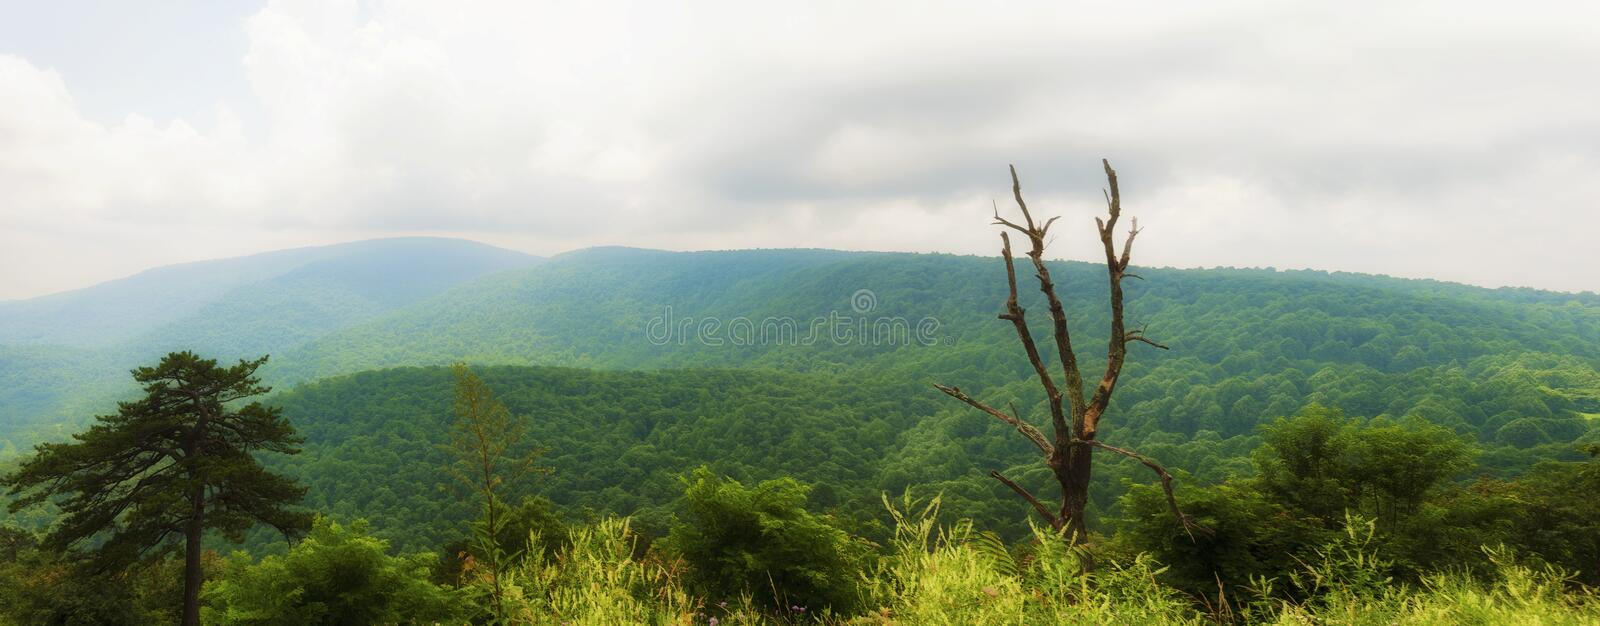 Shenandoah National Park Views along skyline Drive. Panorama View of the landscape in Shenandoah National Park in Virginia runs along the Blue Ridge Mountains in royalty free stock photo